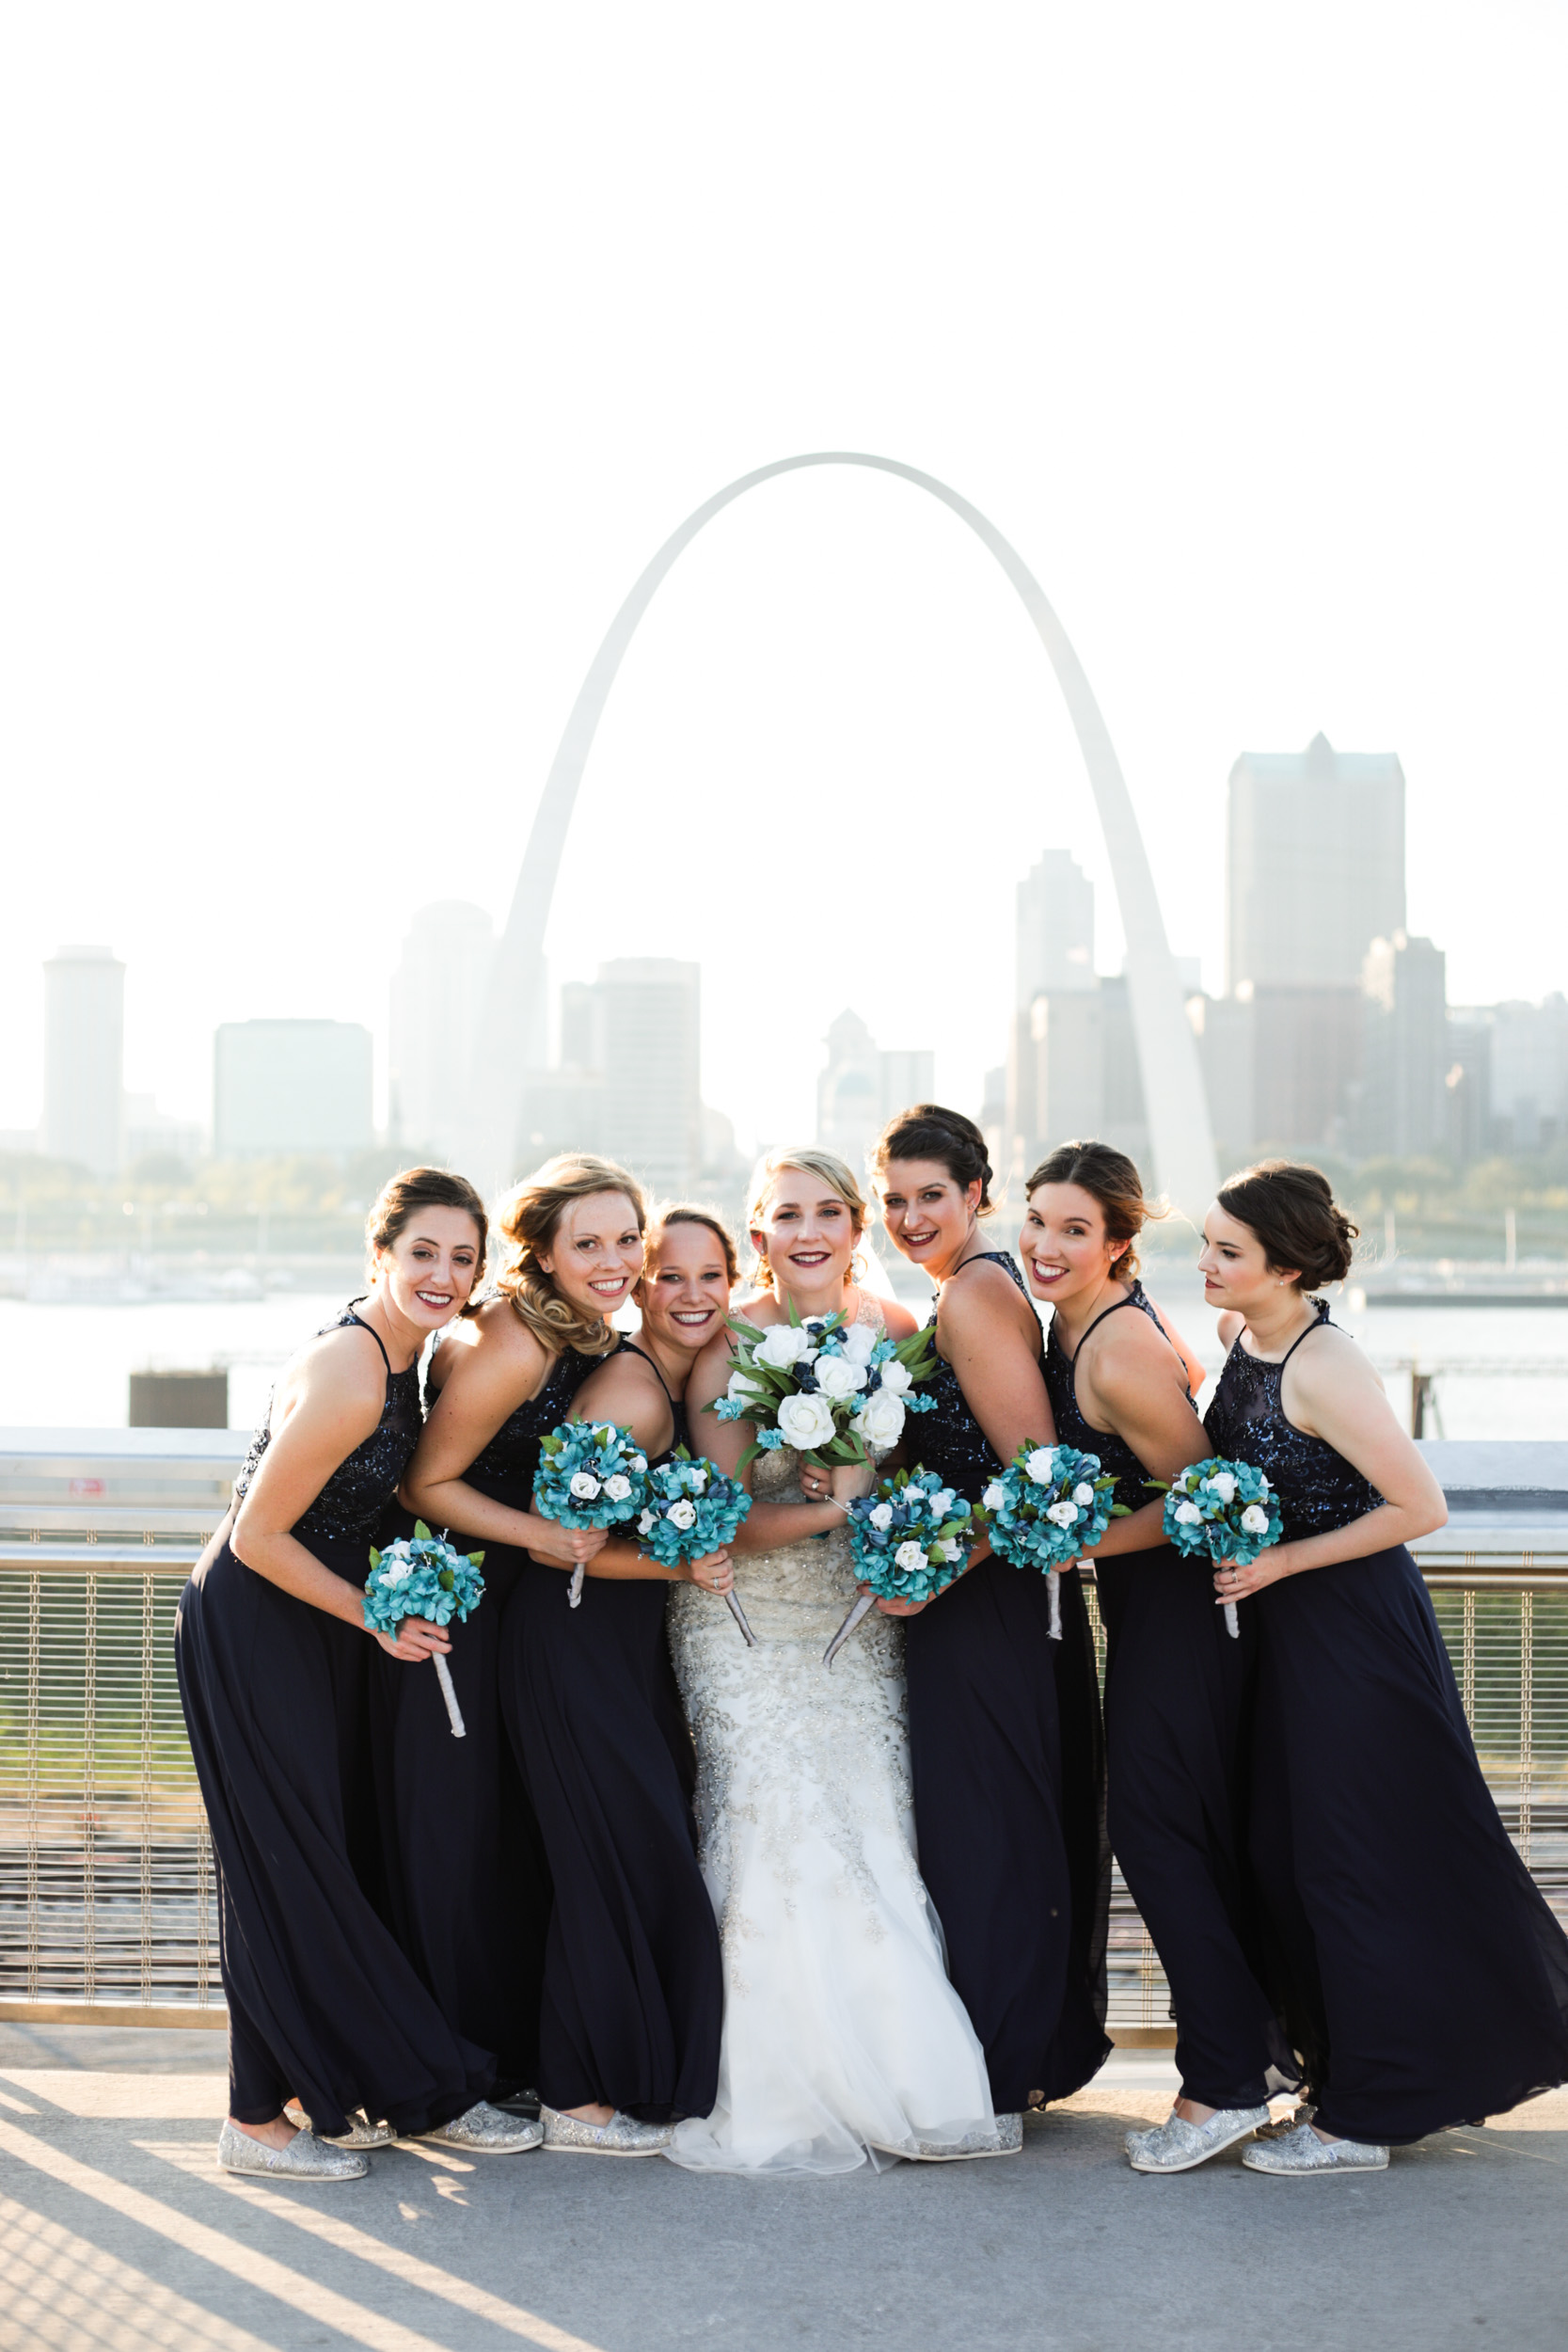 Winstanley Baptist Church Wedding and Four Points by Sheraton Reception Photos by St Louis Wedding Photographers and Videographers Oldani Photography 133.jpg